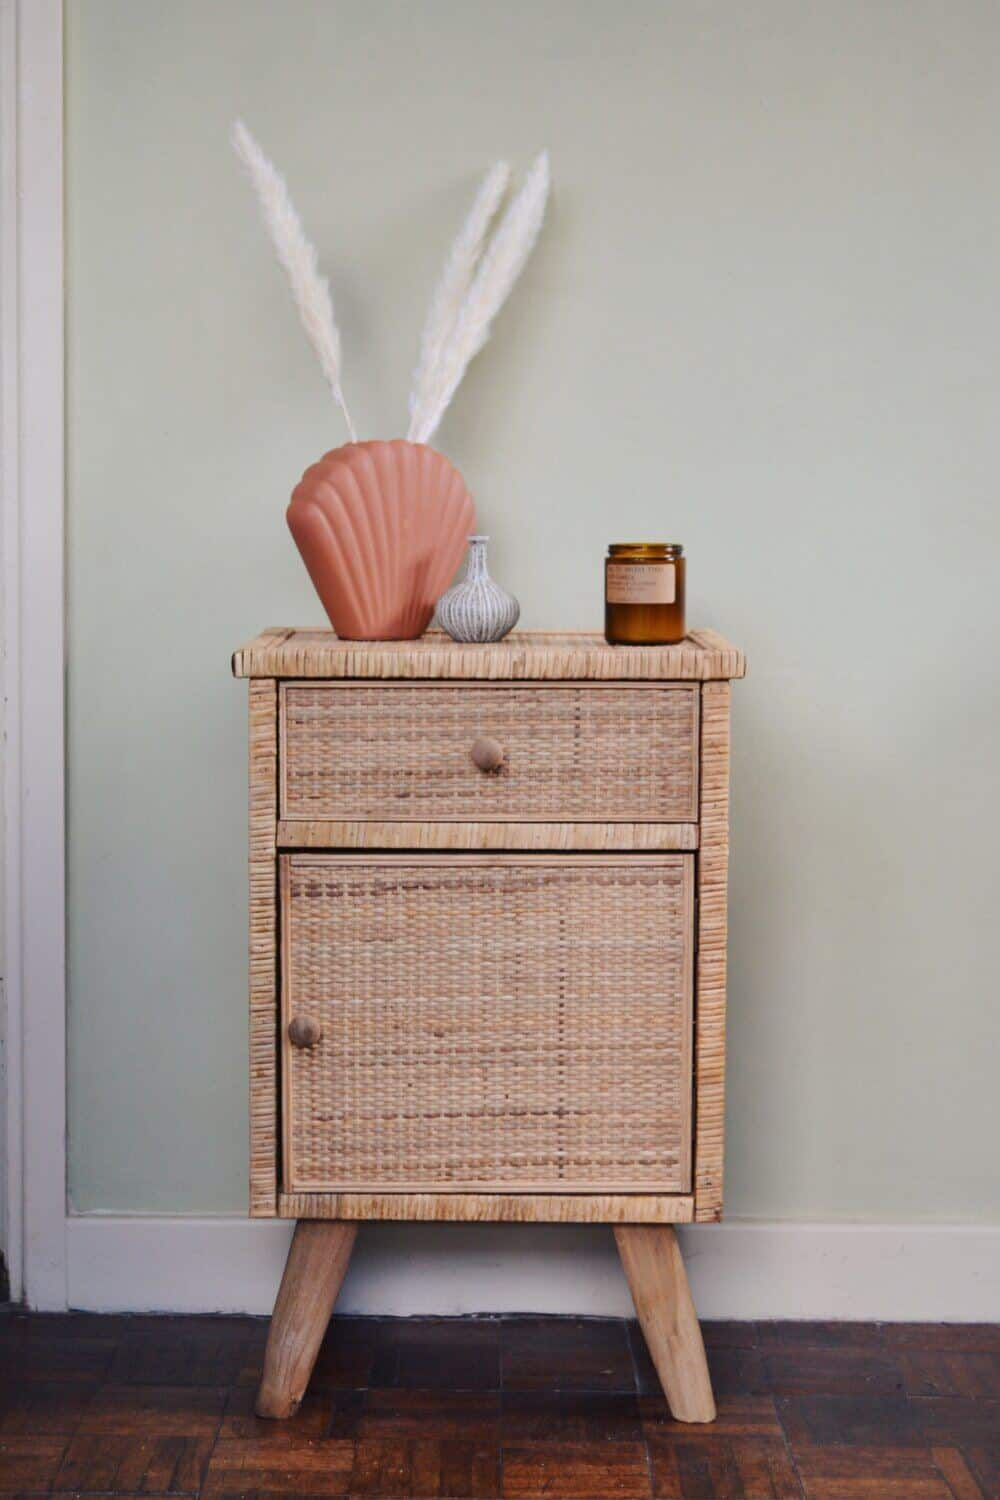 Rattan bedside table from Spicer & Wood